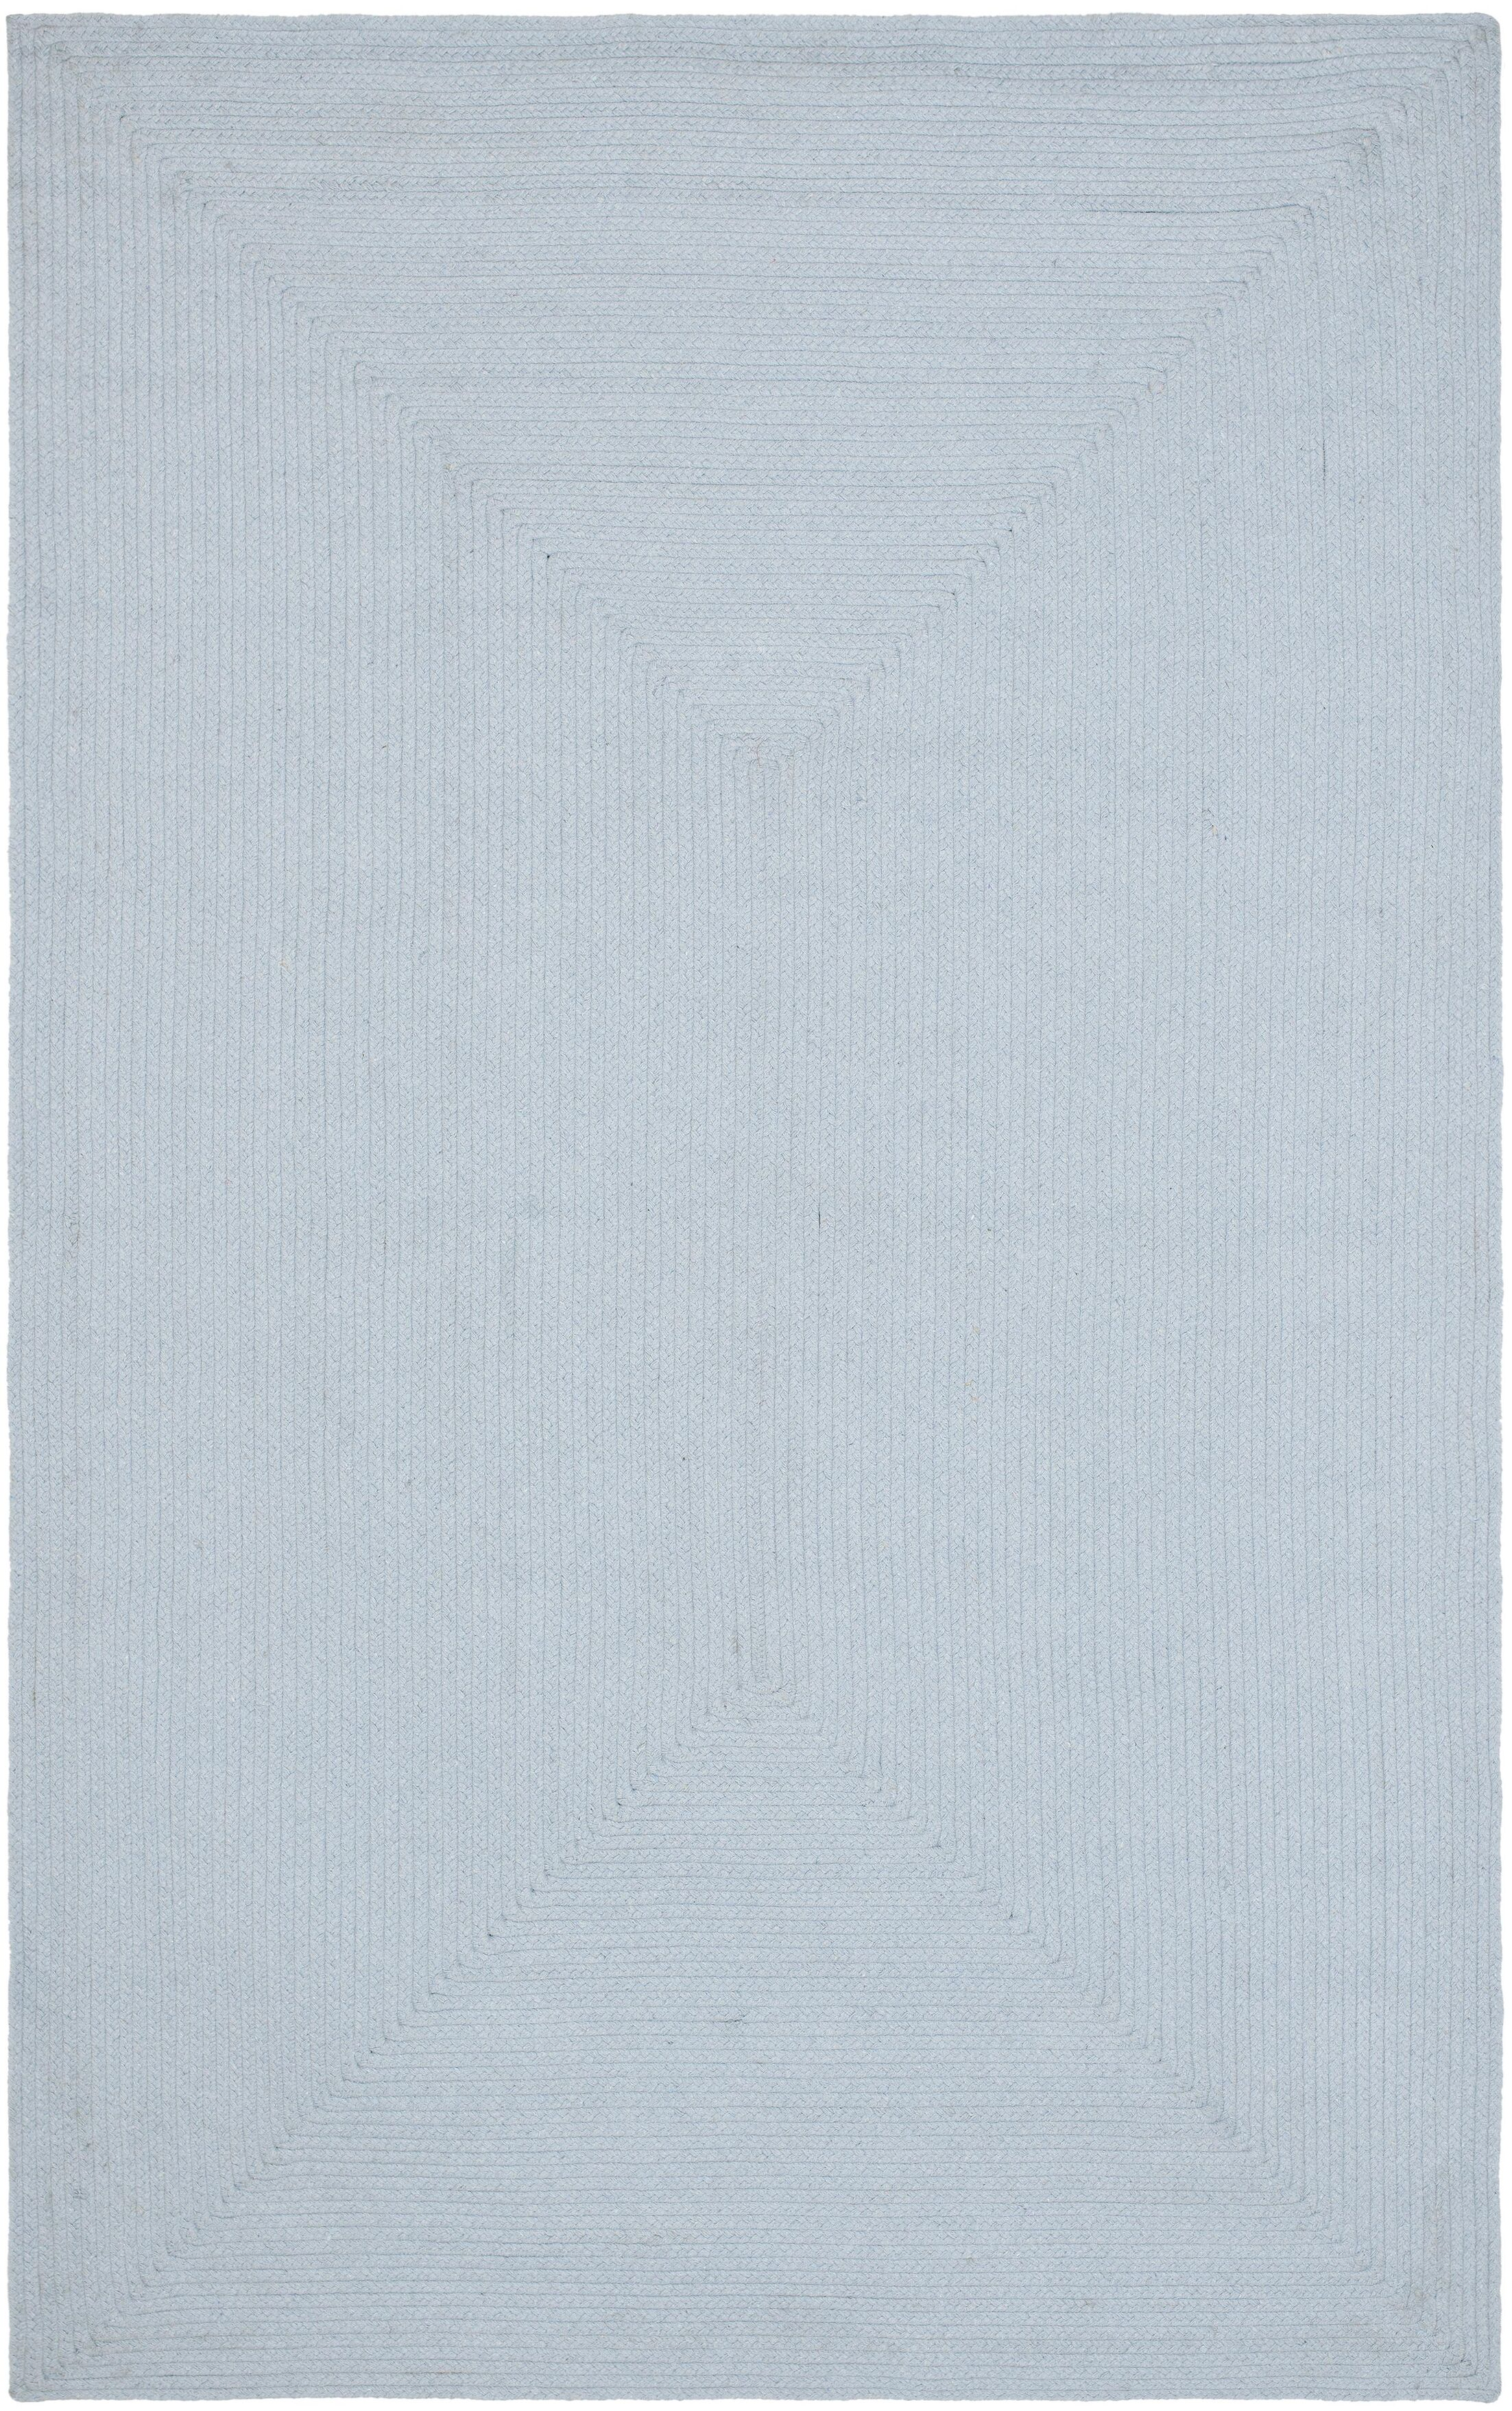 Stahlman Hand Woven Light Blue Area Rug Rug Size: Runner 2'6